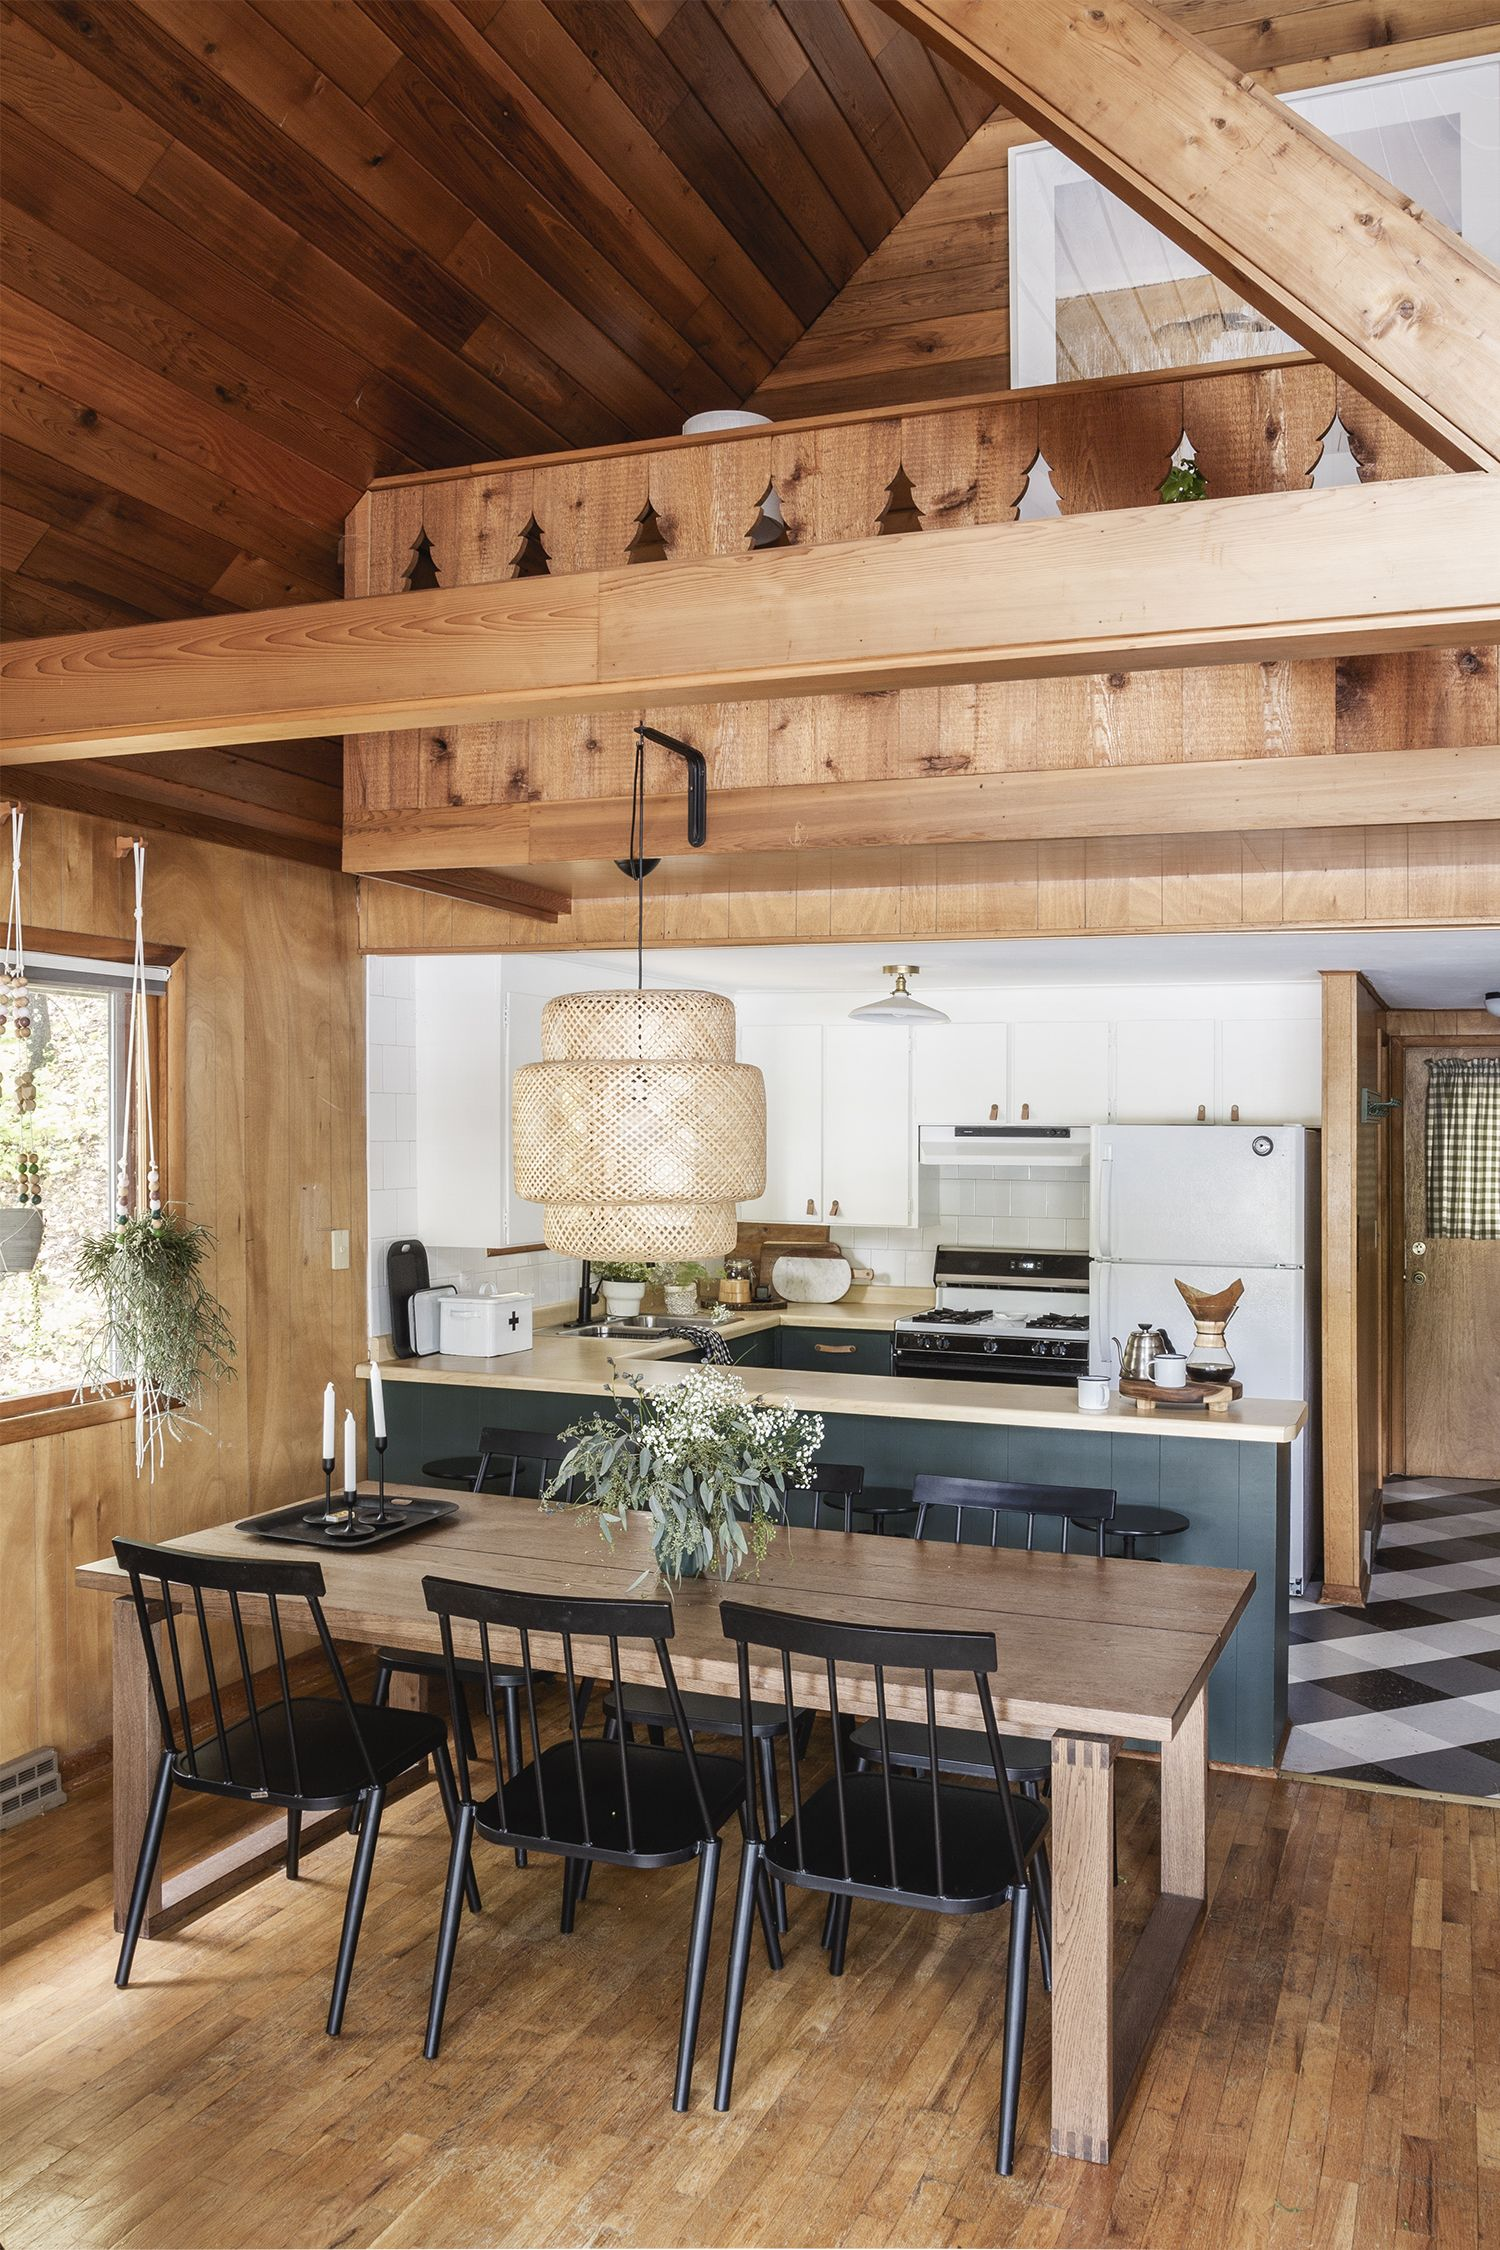 cabin kitchen reveal small cabin kitchens small cabin interiors cabin kitchens on interior design kitchen small modern id=94229